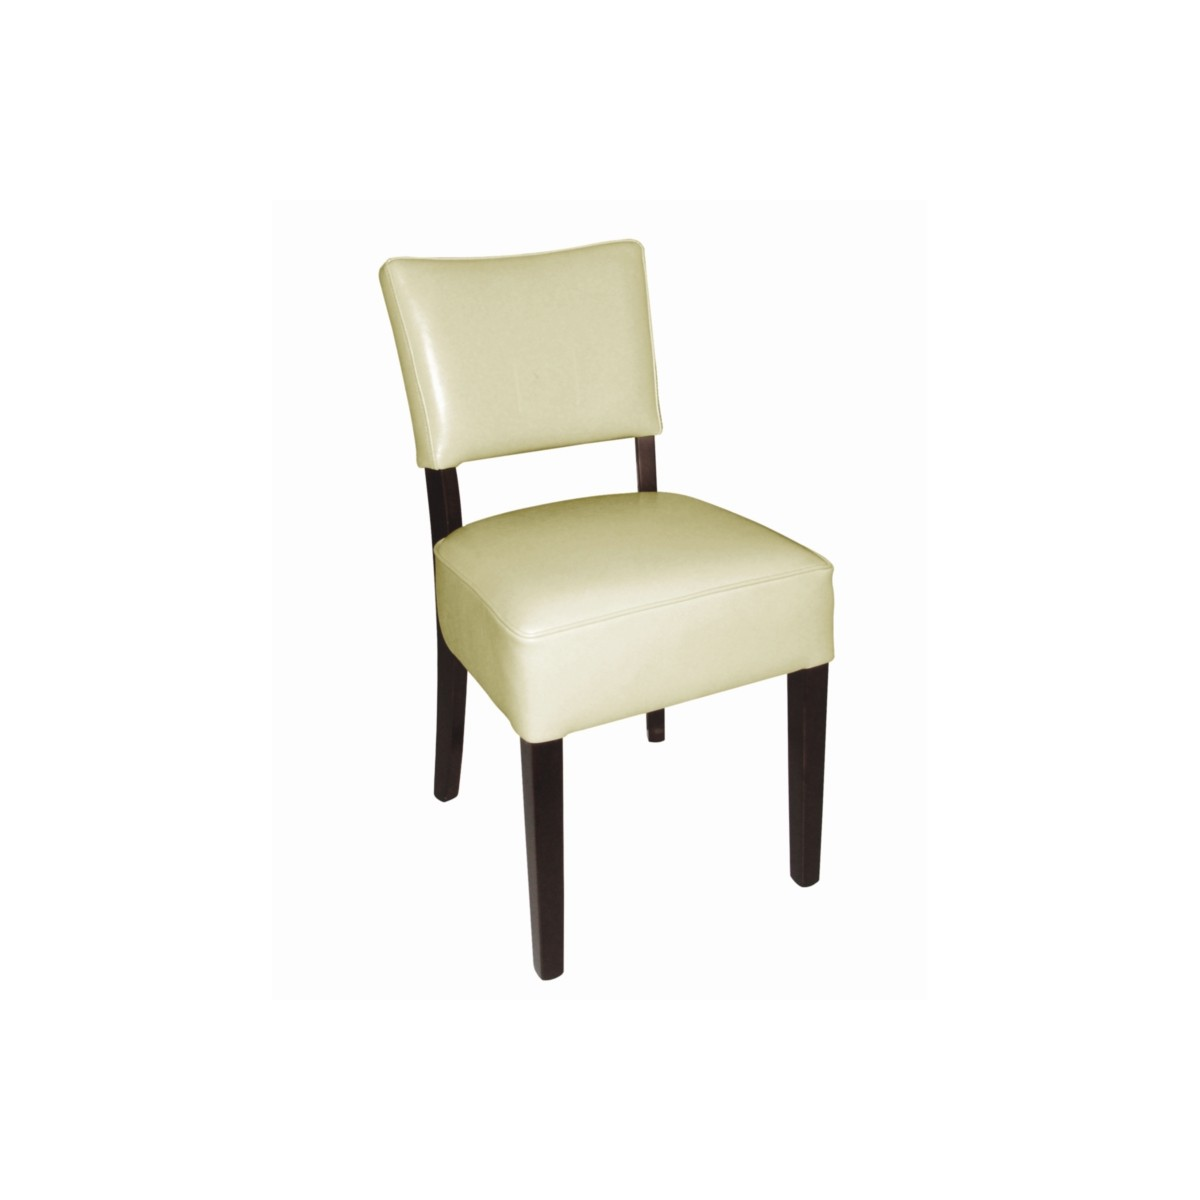 Chaises en simili cuir cr me resto gastromastro for Chaises simili cuir marron